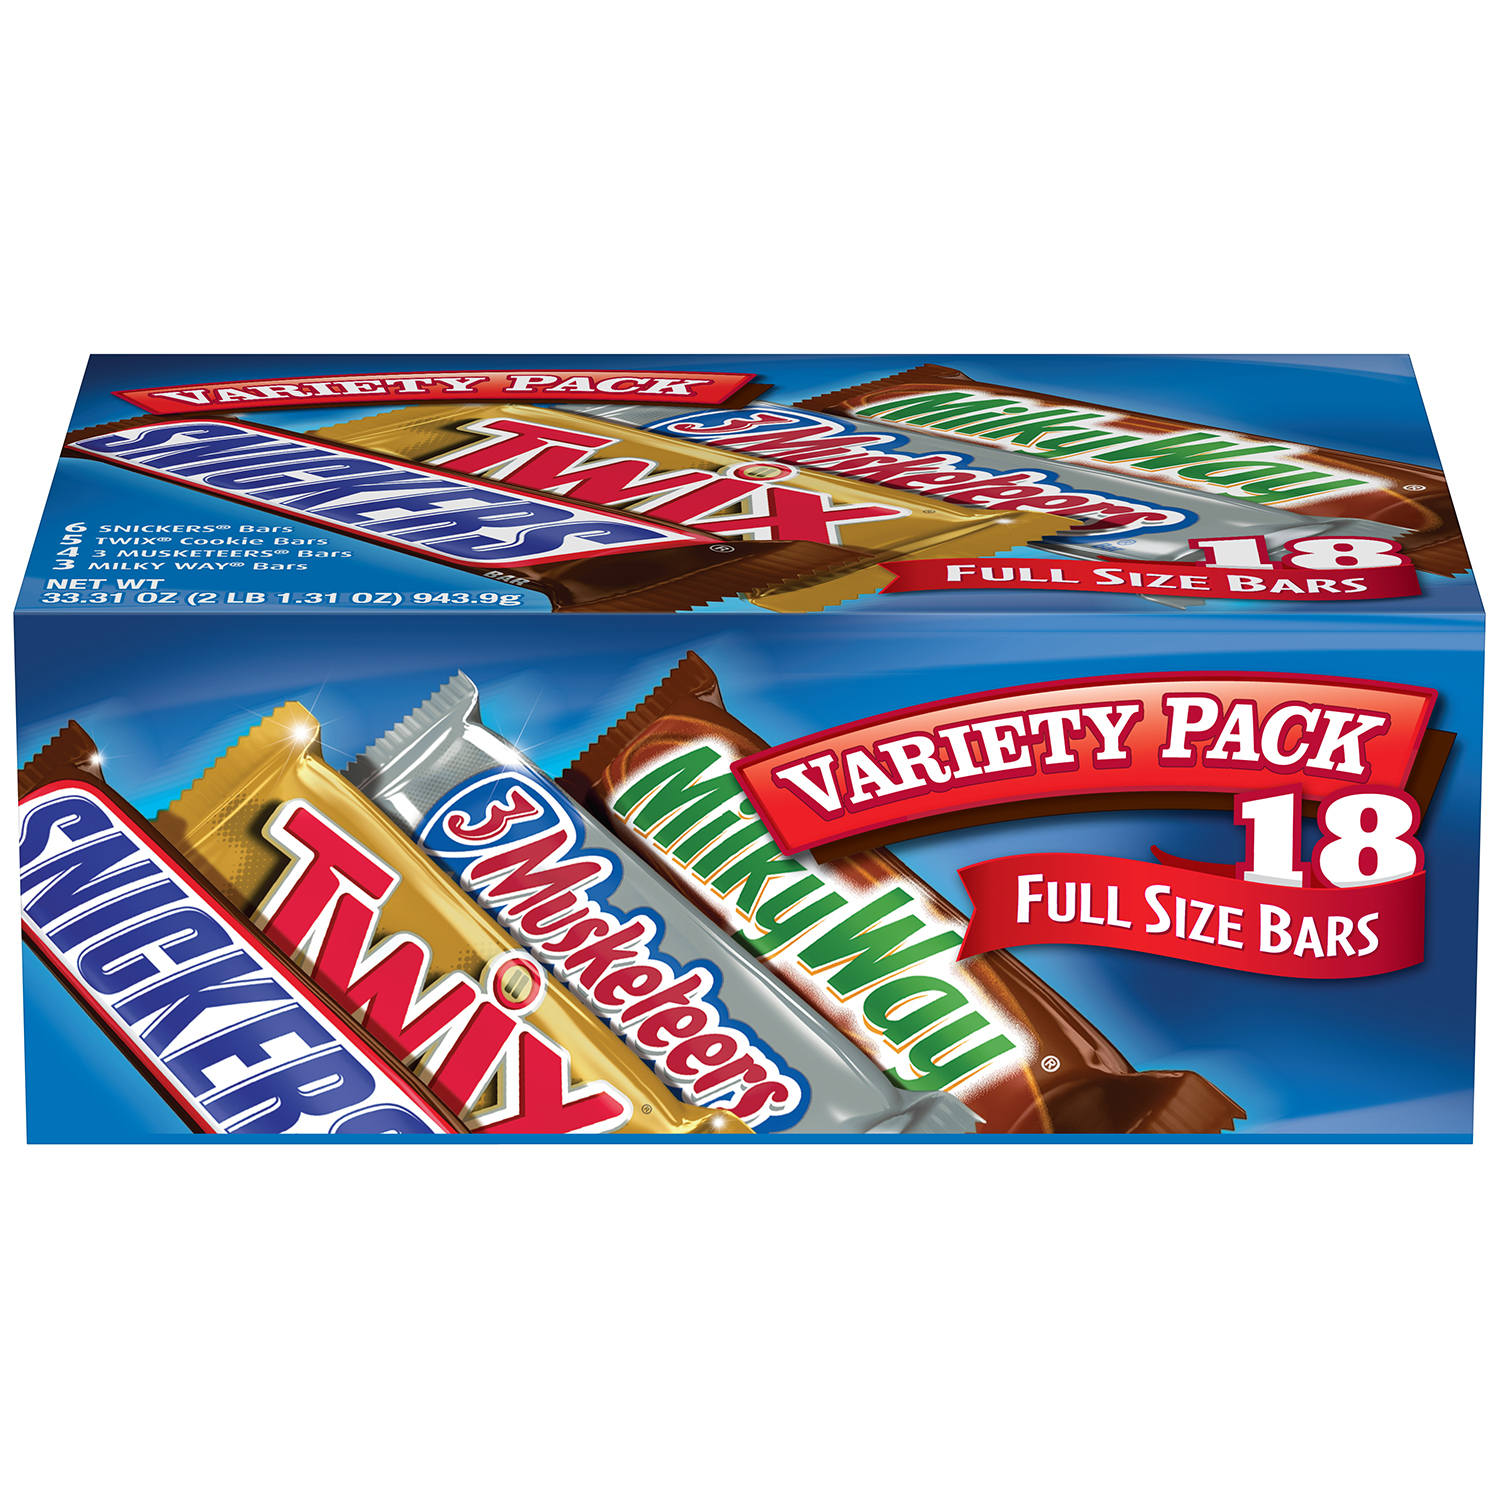 MARS Chocolate Full Size Candy Bars Assorted Variety Box (TWIX, MILKY WAY, SNICKERS, 3... by MARS, INC.